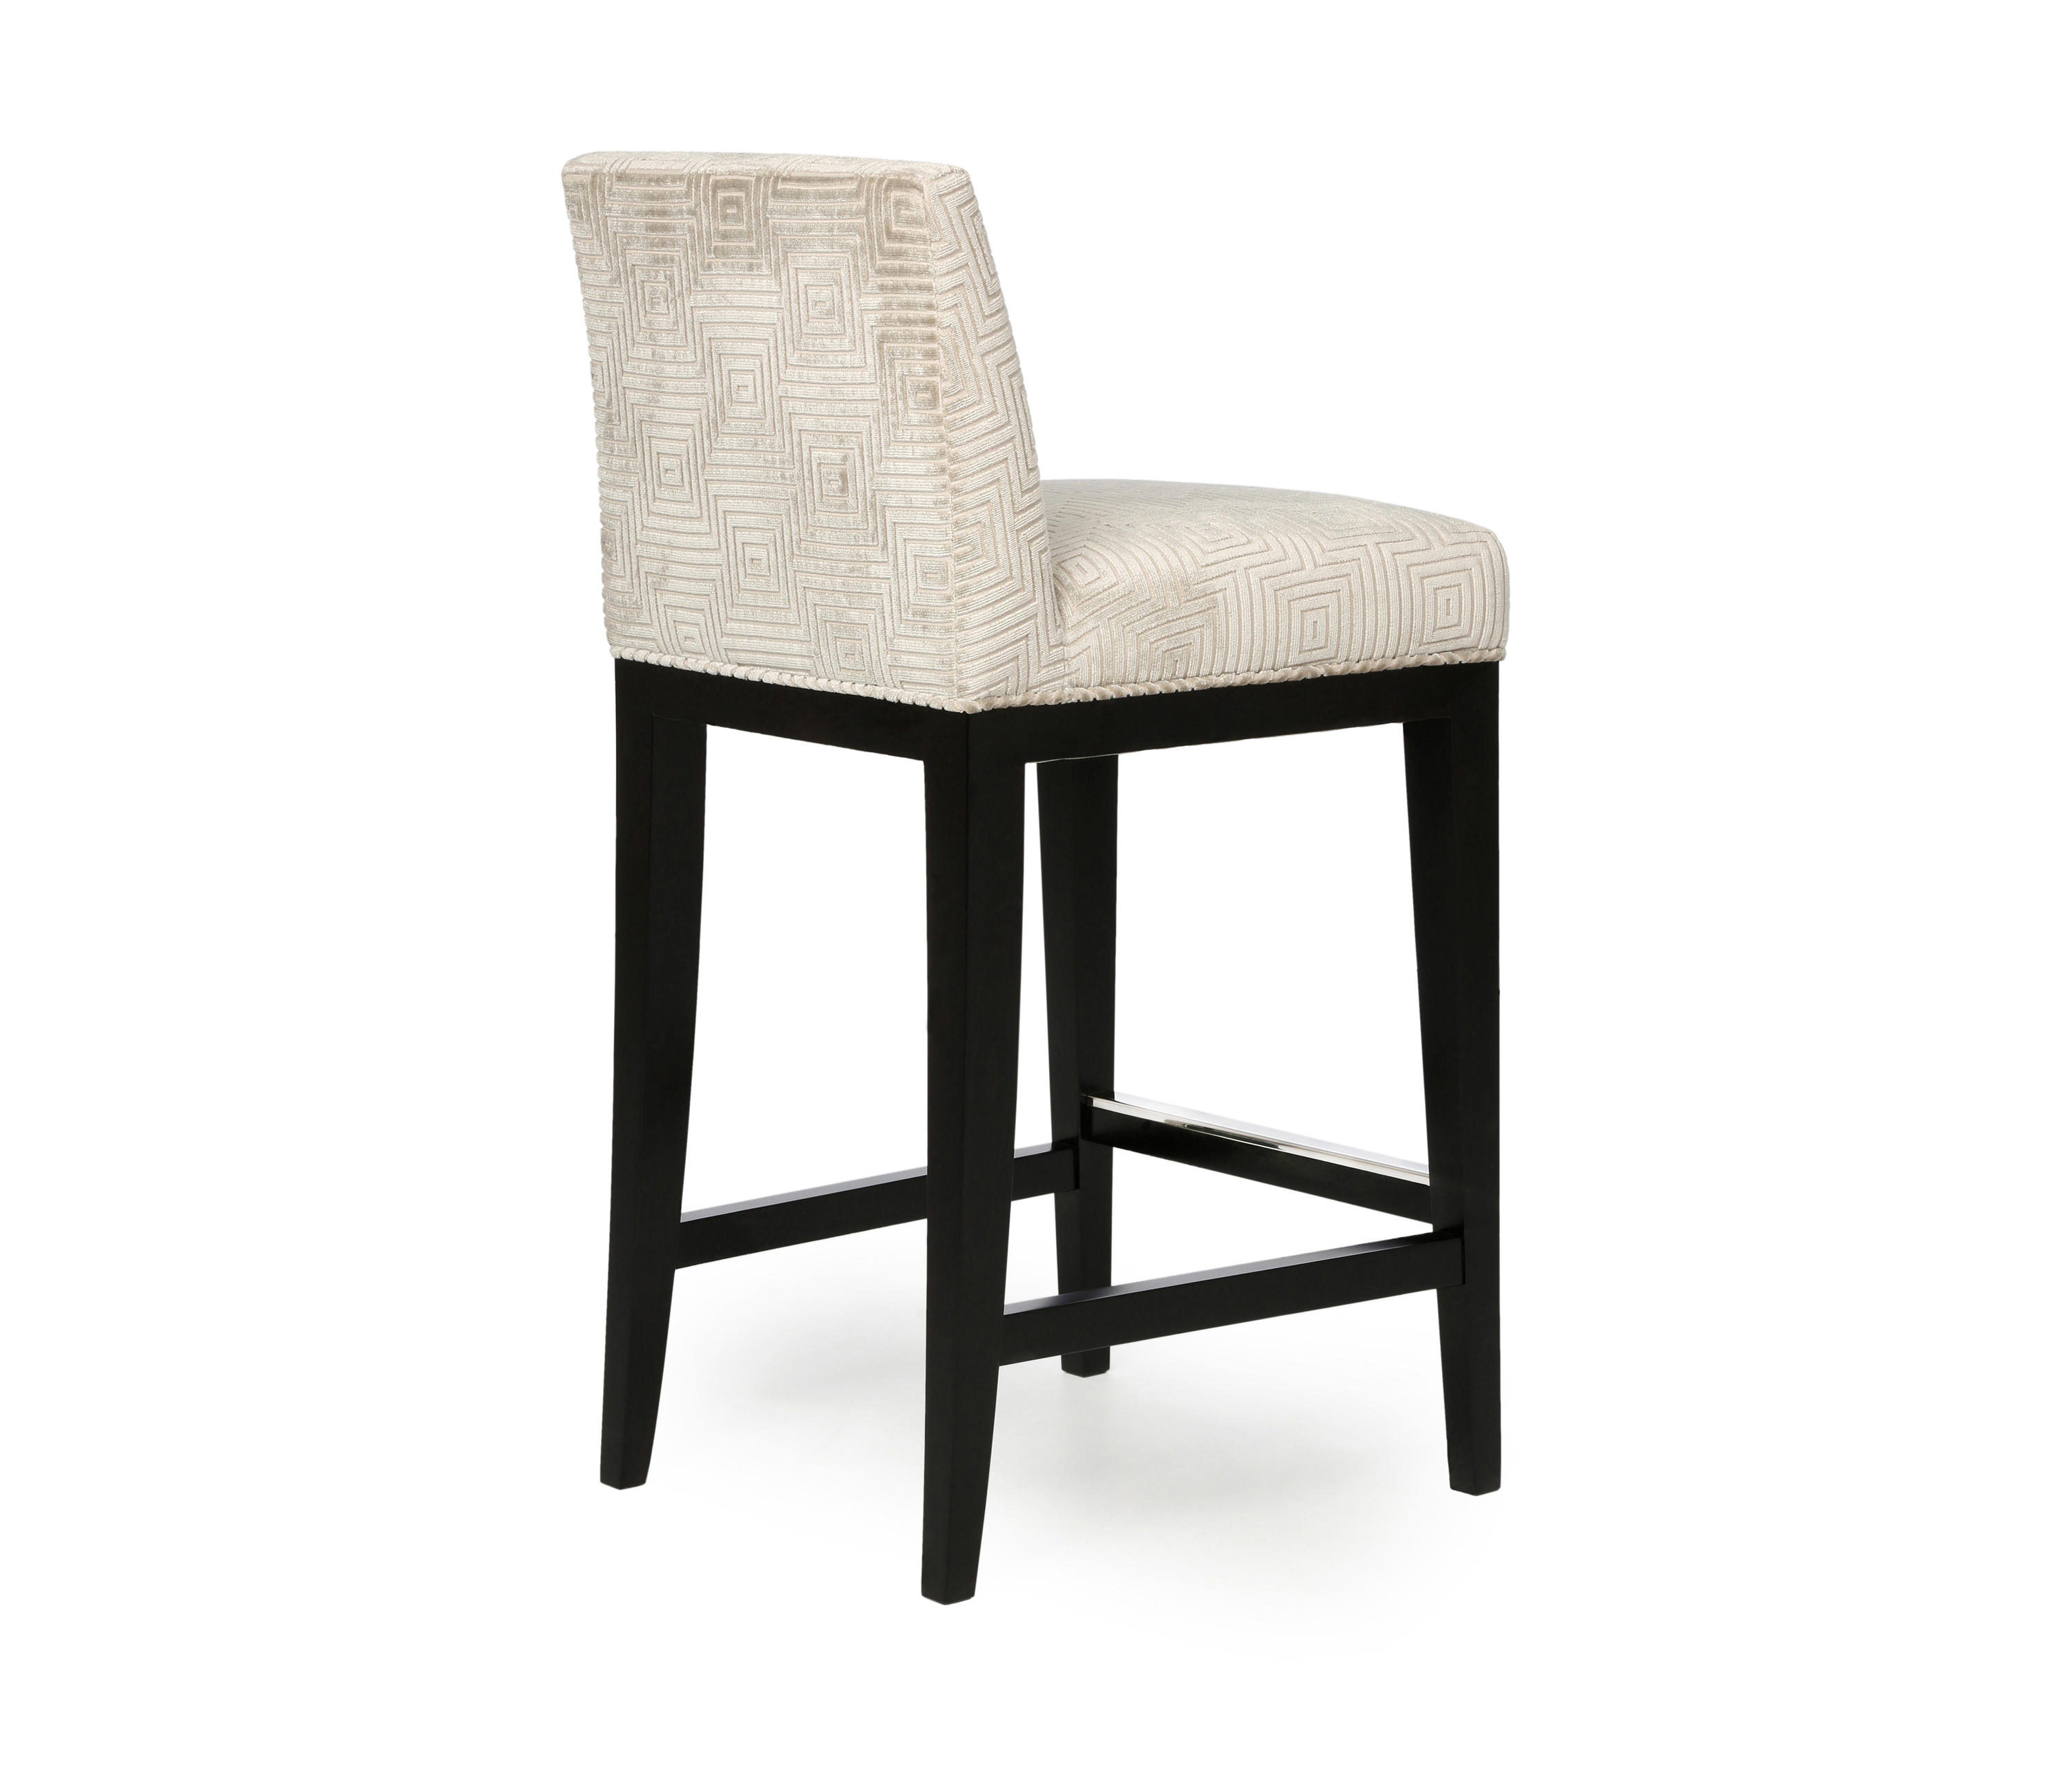 chair stool sofa dining room chairs canada byron bar stools from the and company